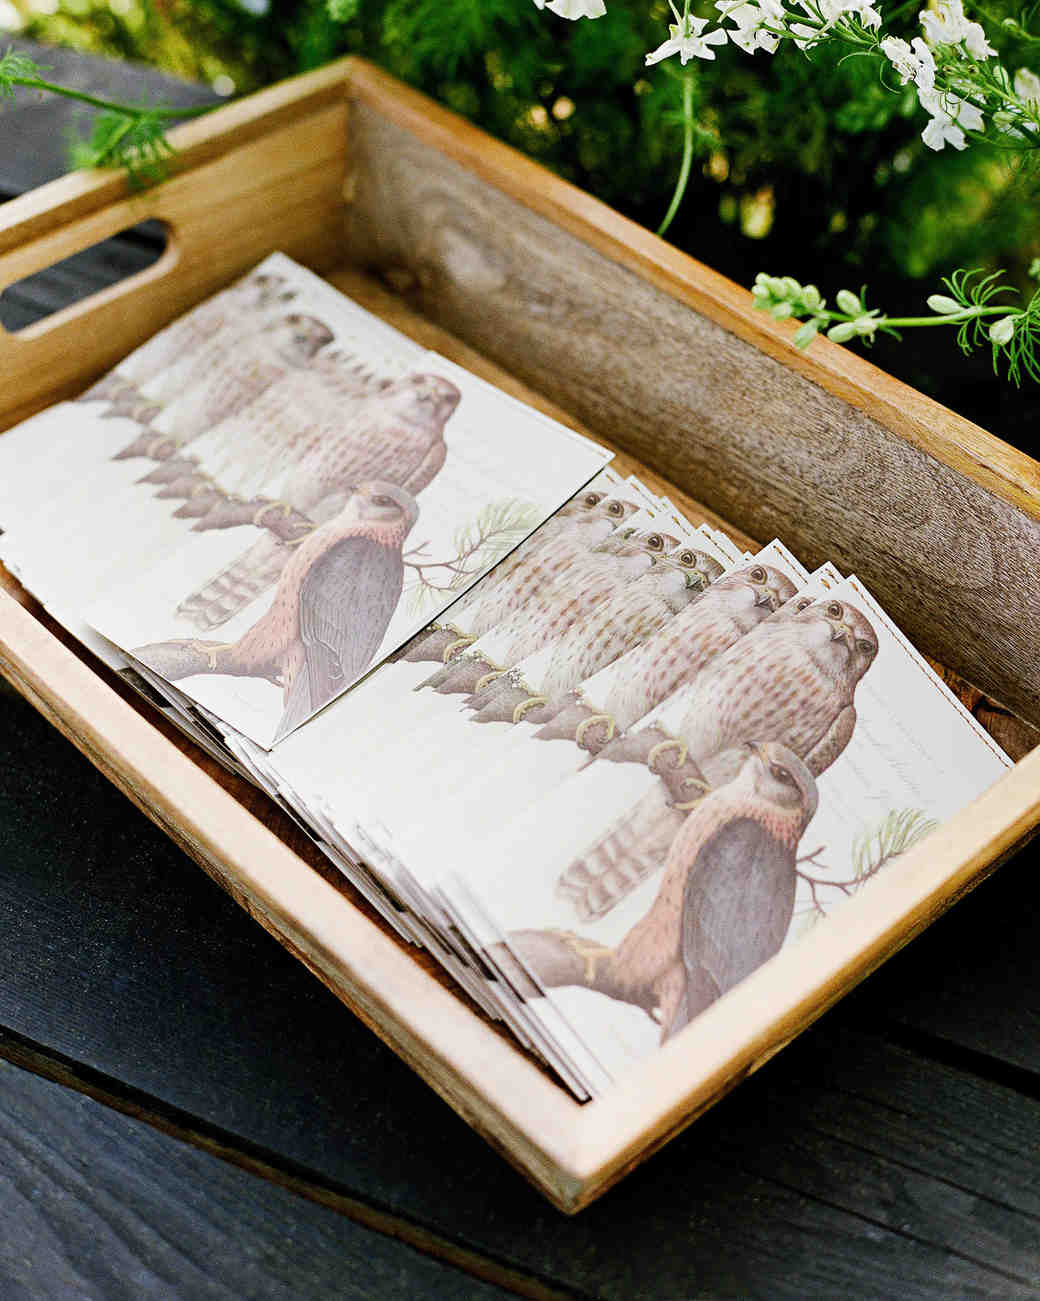 whitney zach wedding programs in wooden box